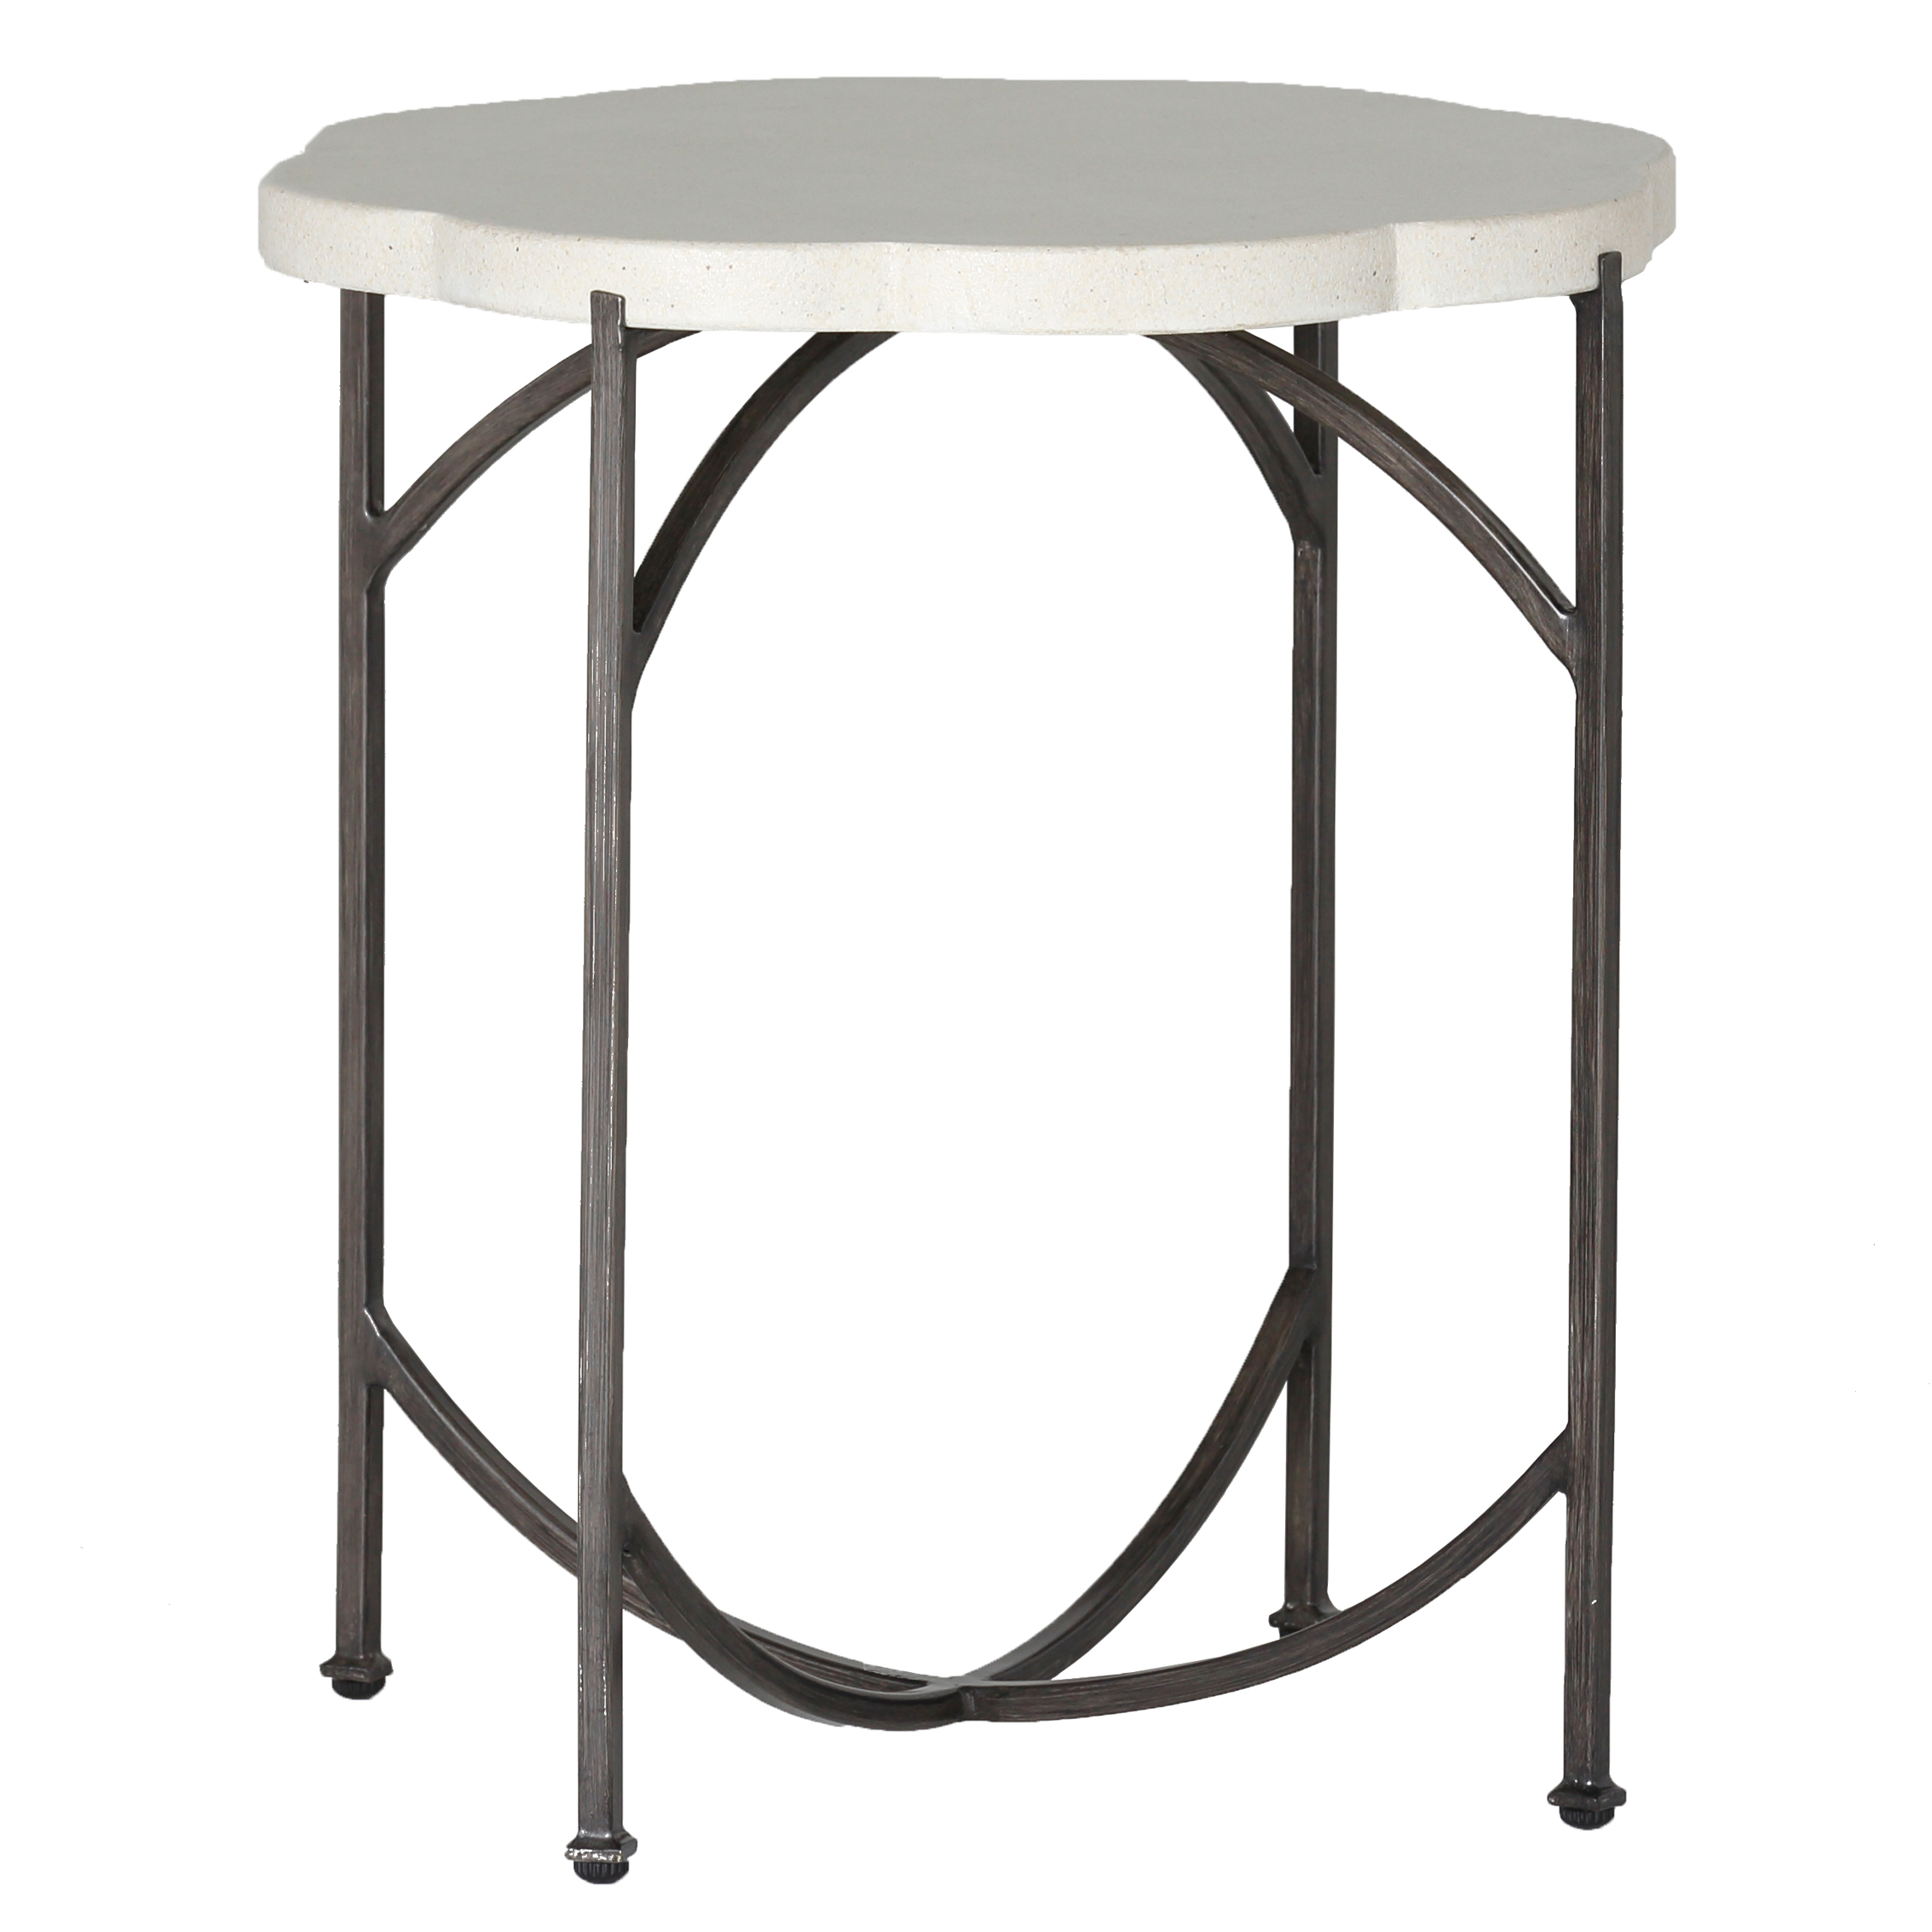 allen tables black ideas lots of inspirations roth white design chic umbrellas and cushions lamps patio alle for big fan outdoor orlando closet manual lowes ceiling furniture elegant